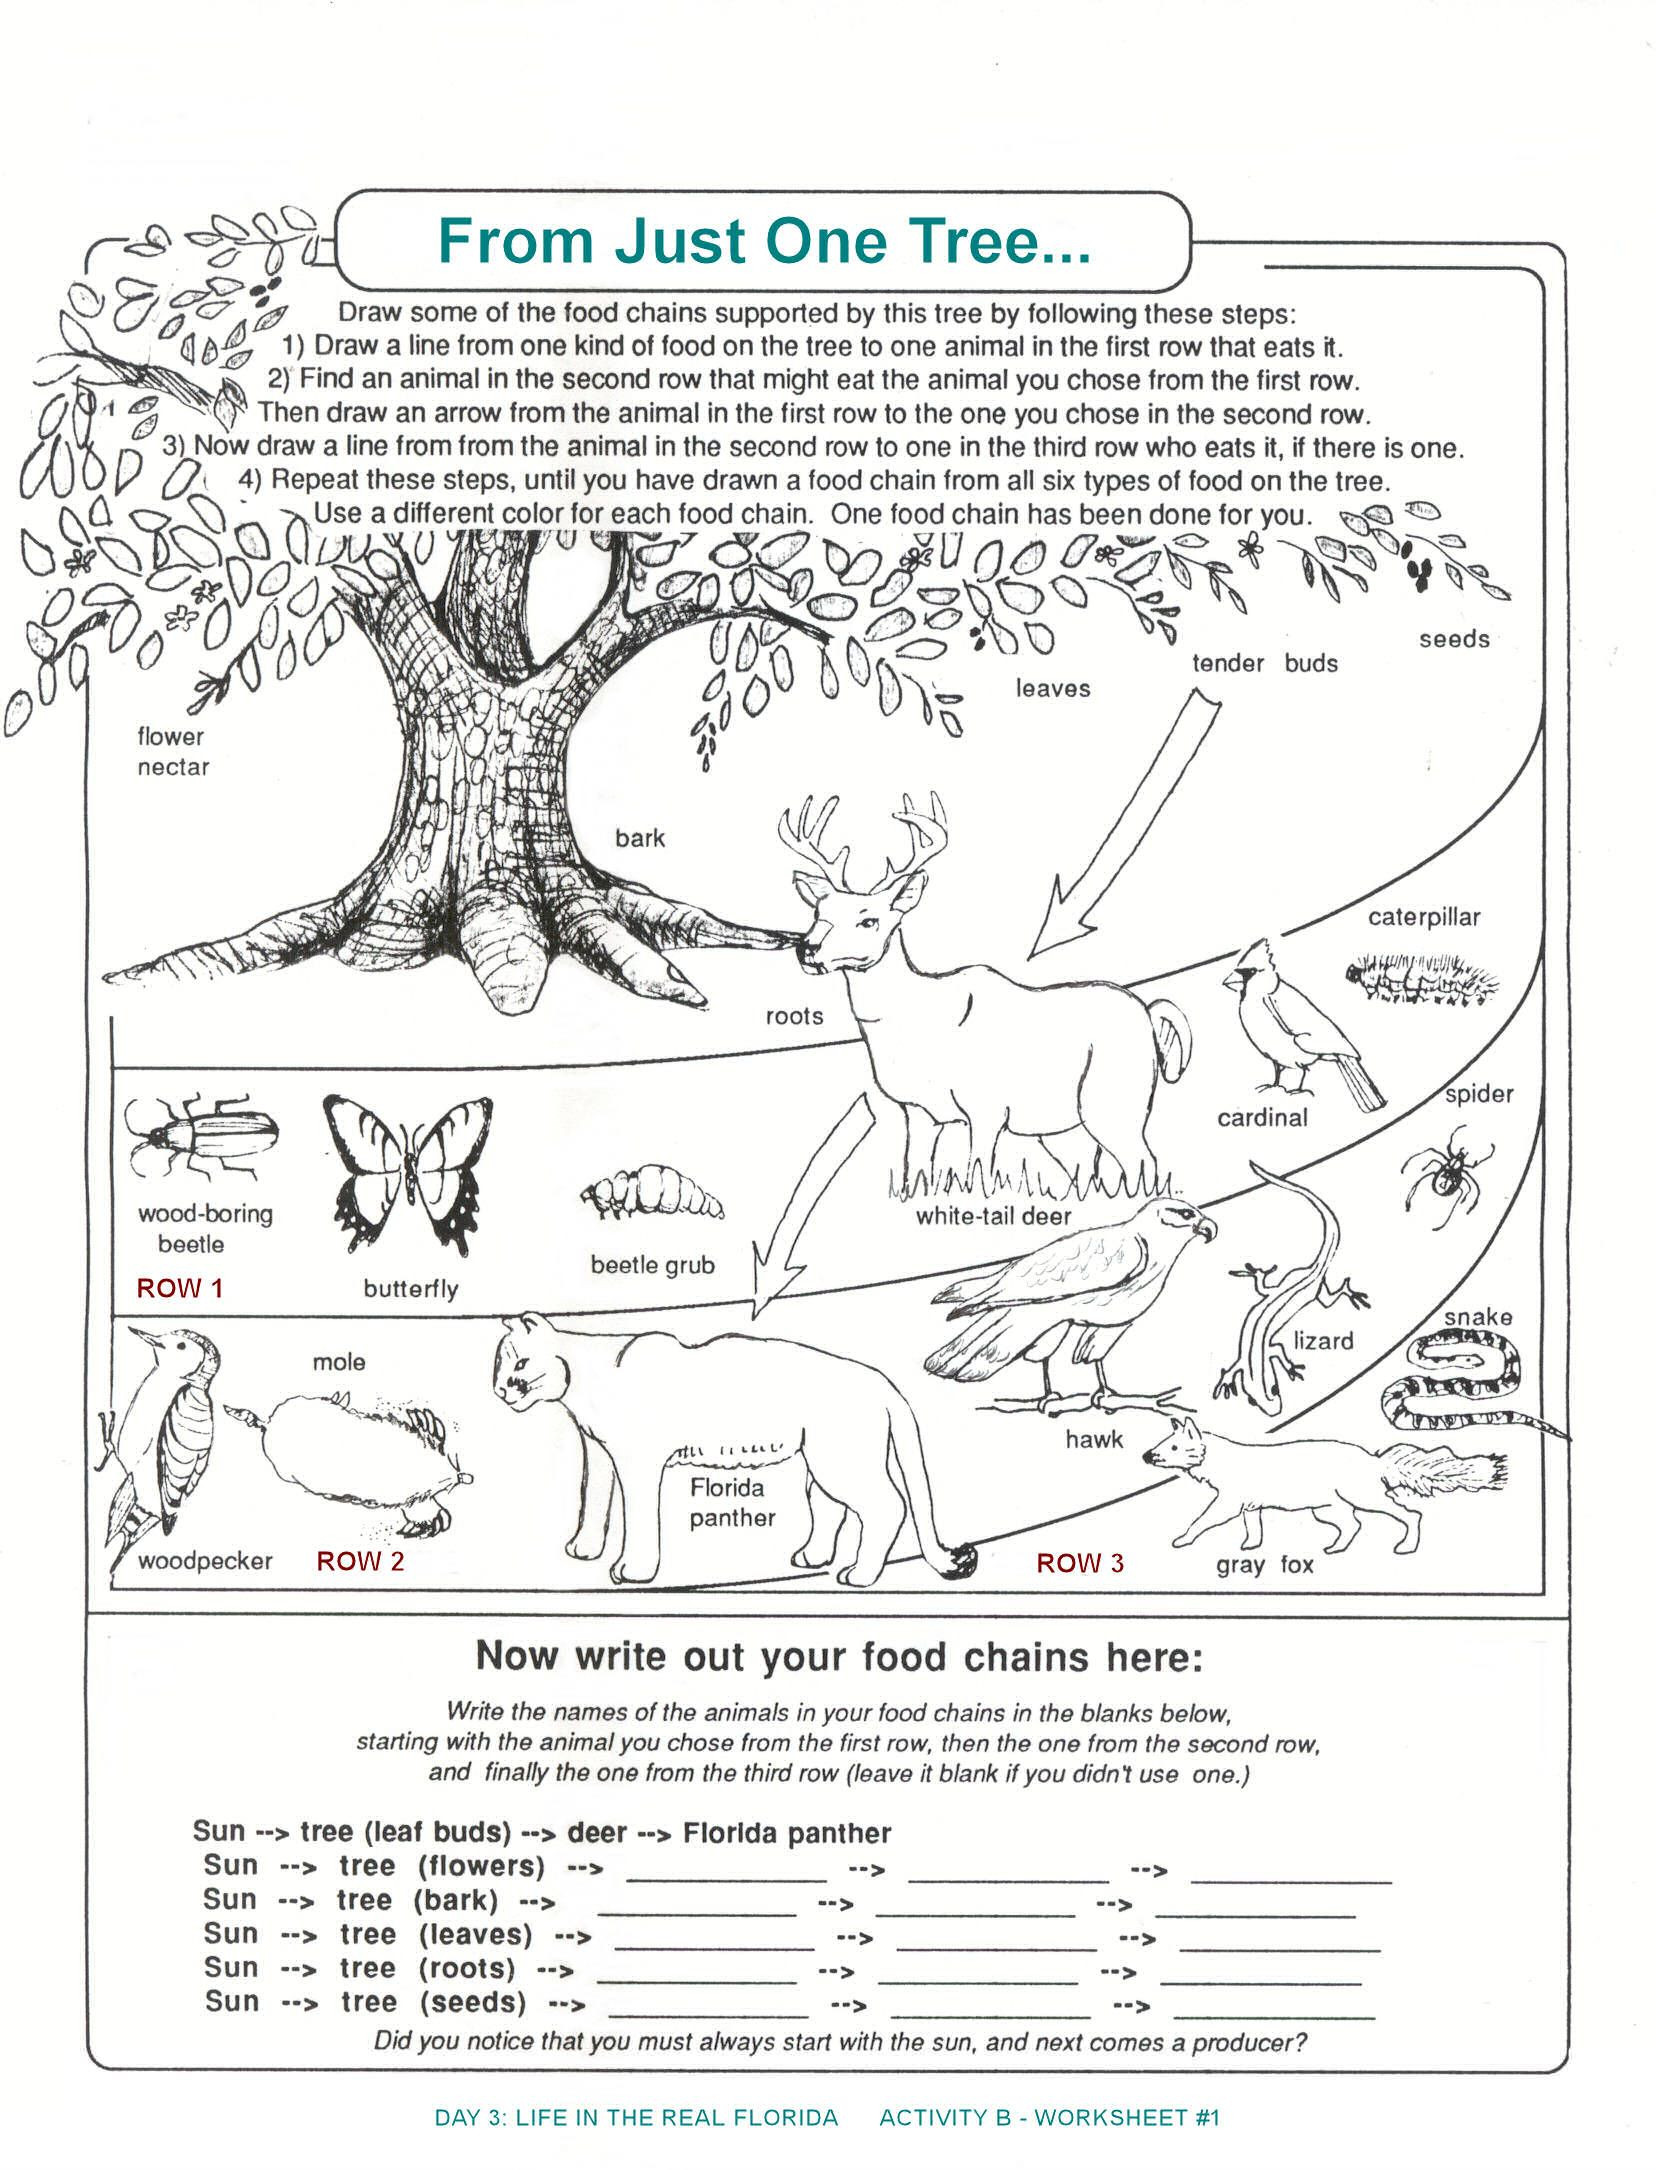 Ecology Review Worksheet 1